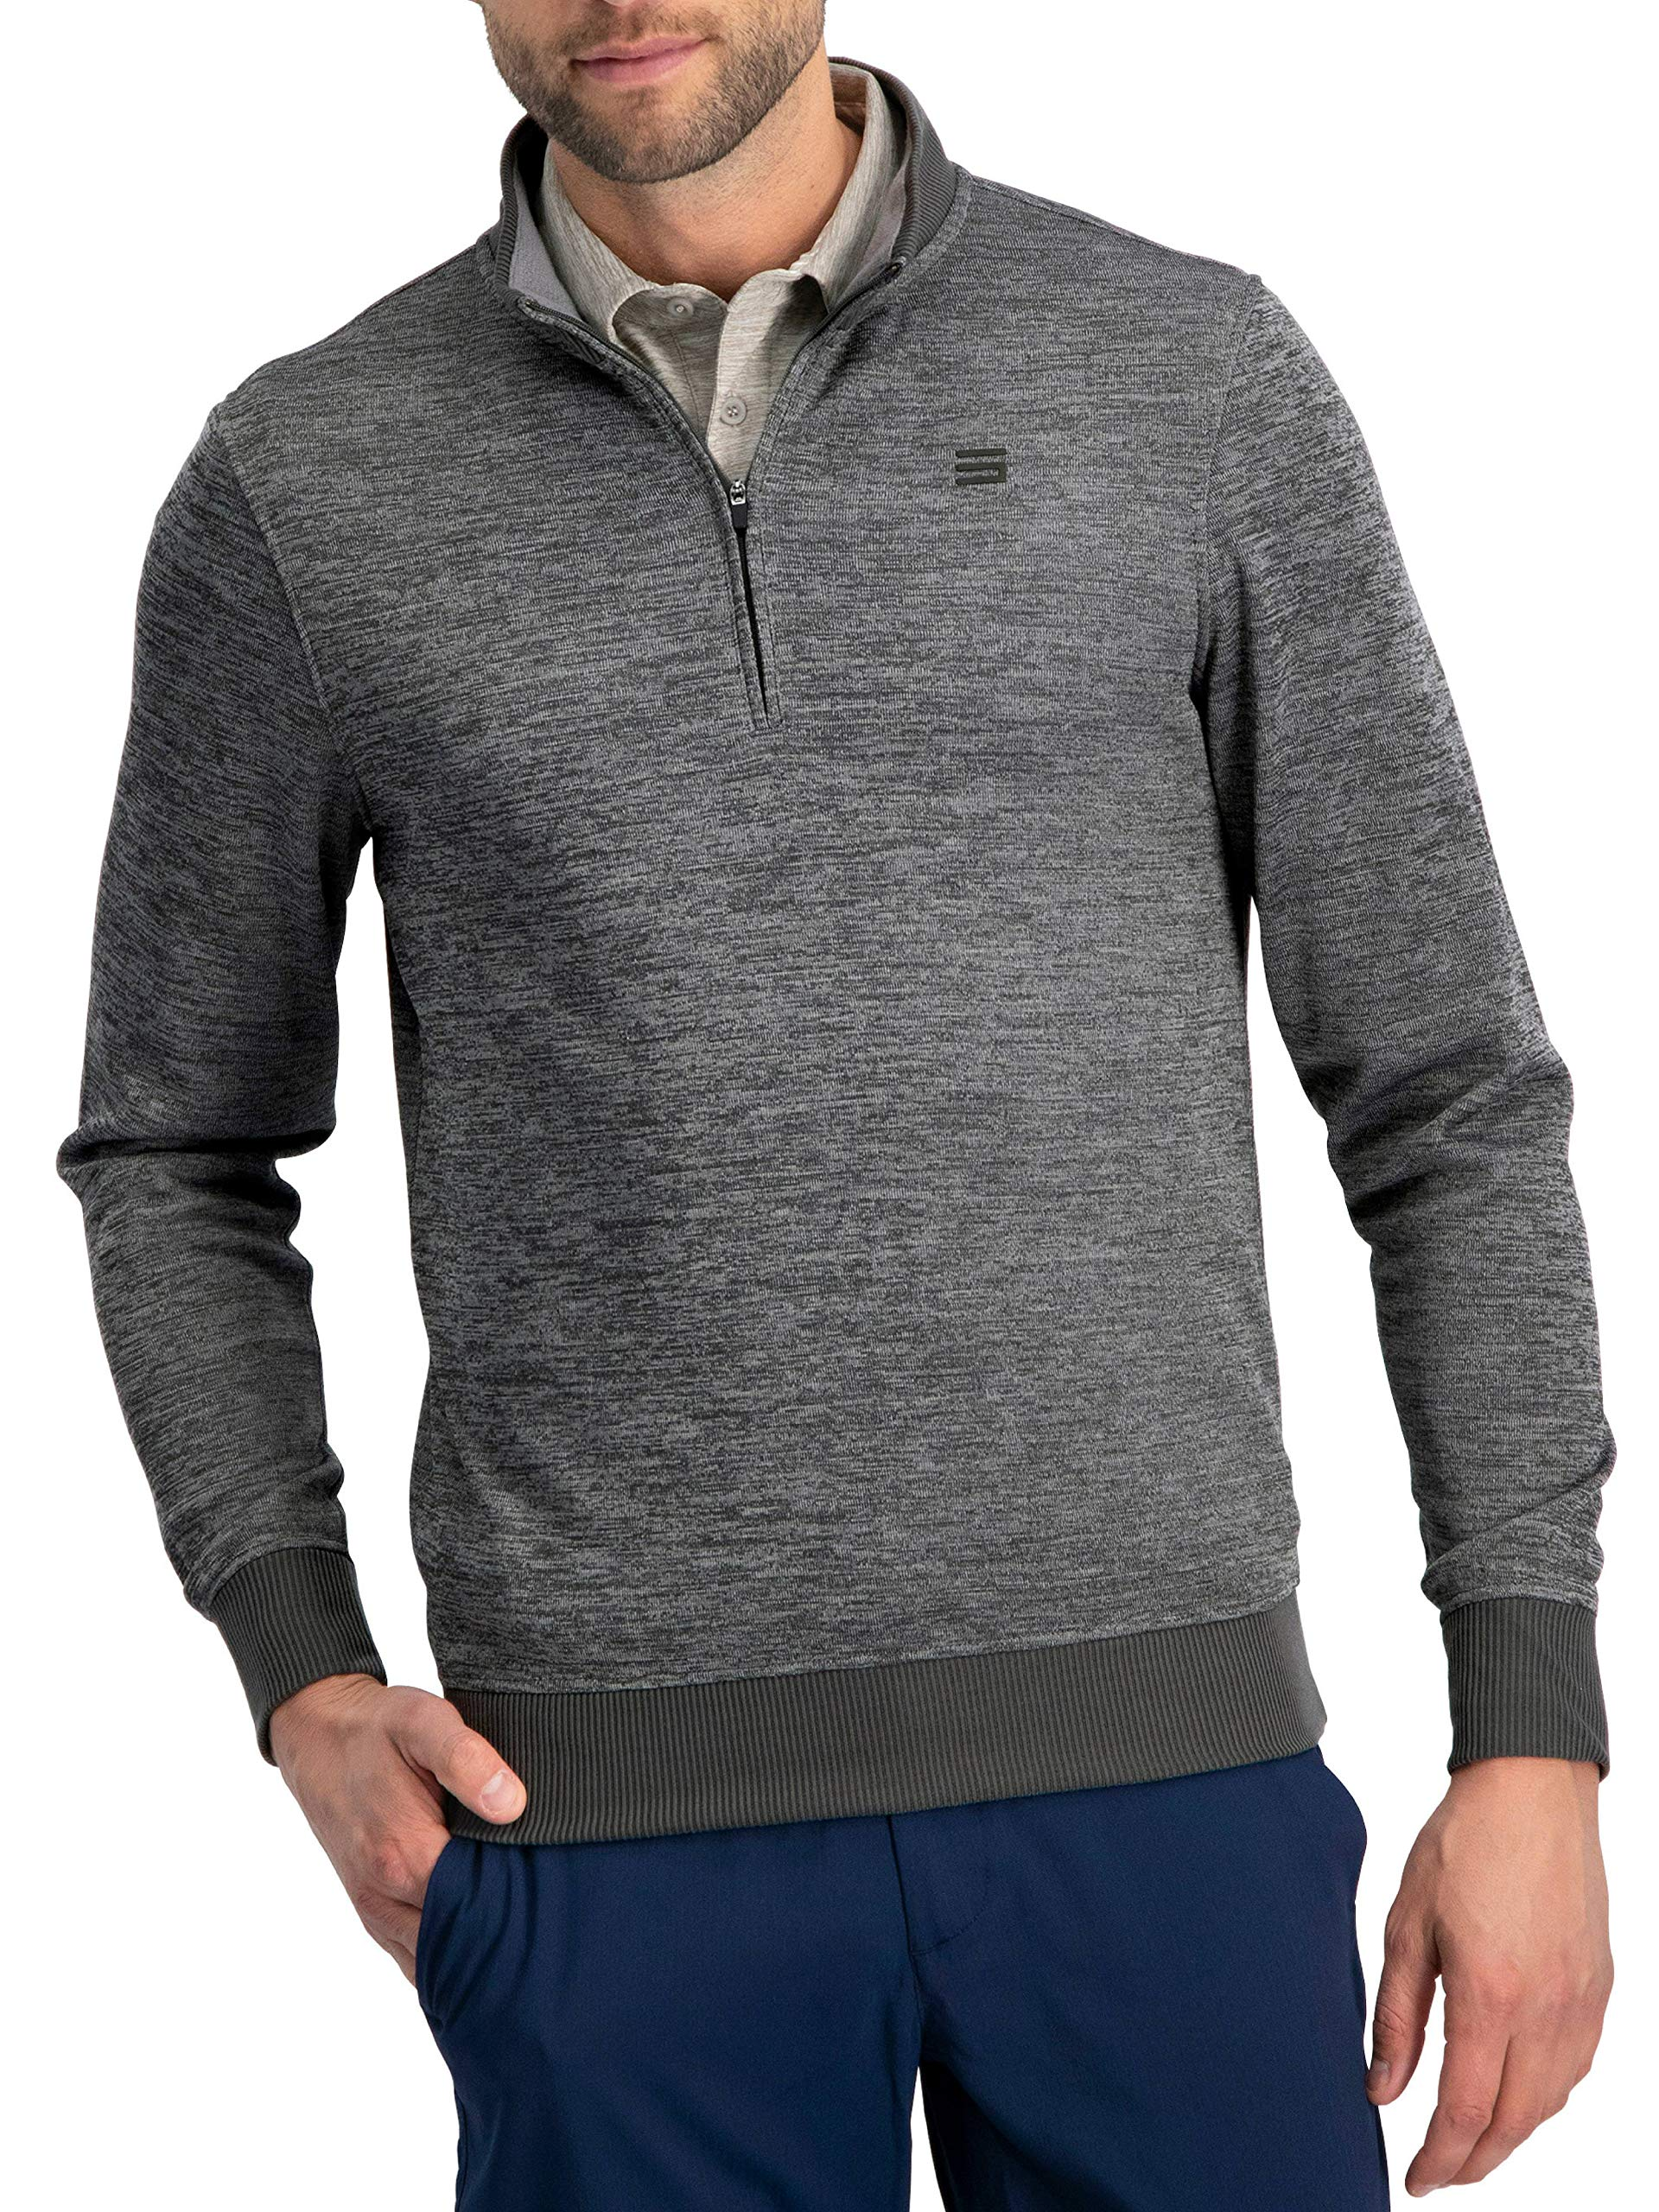 Dry Fit Pullover Sweaters for Men - Quarter Zip Fleece Golf Jacket - Tailored Fit Charcoal by Three Sixty Six